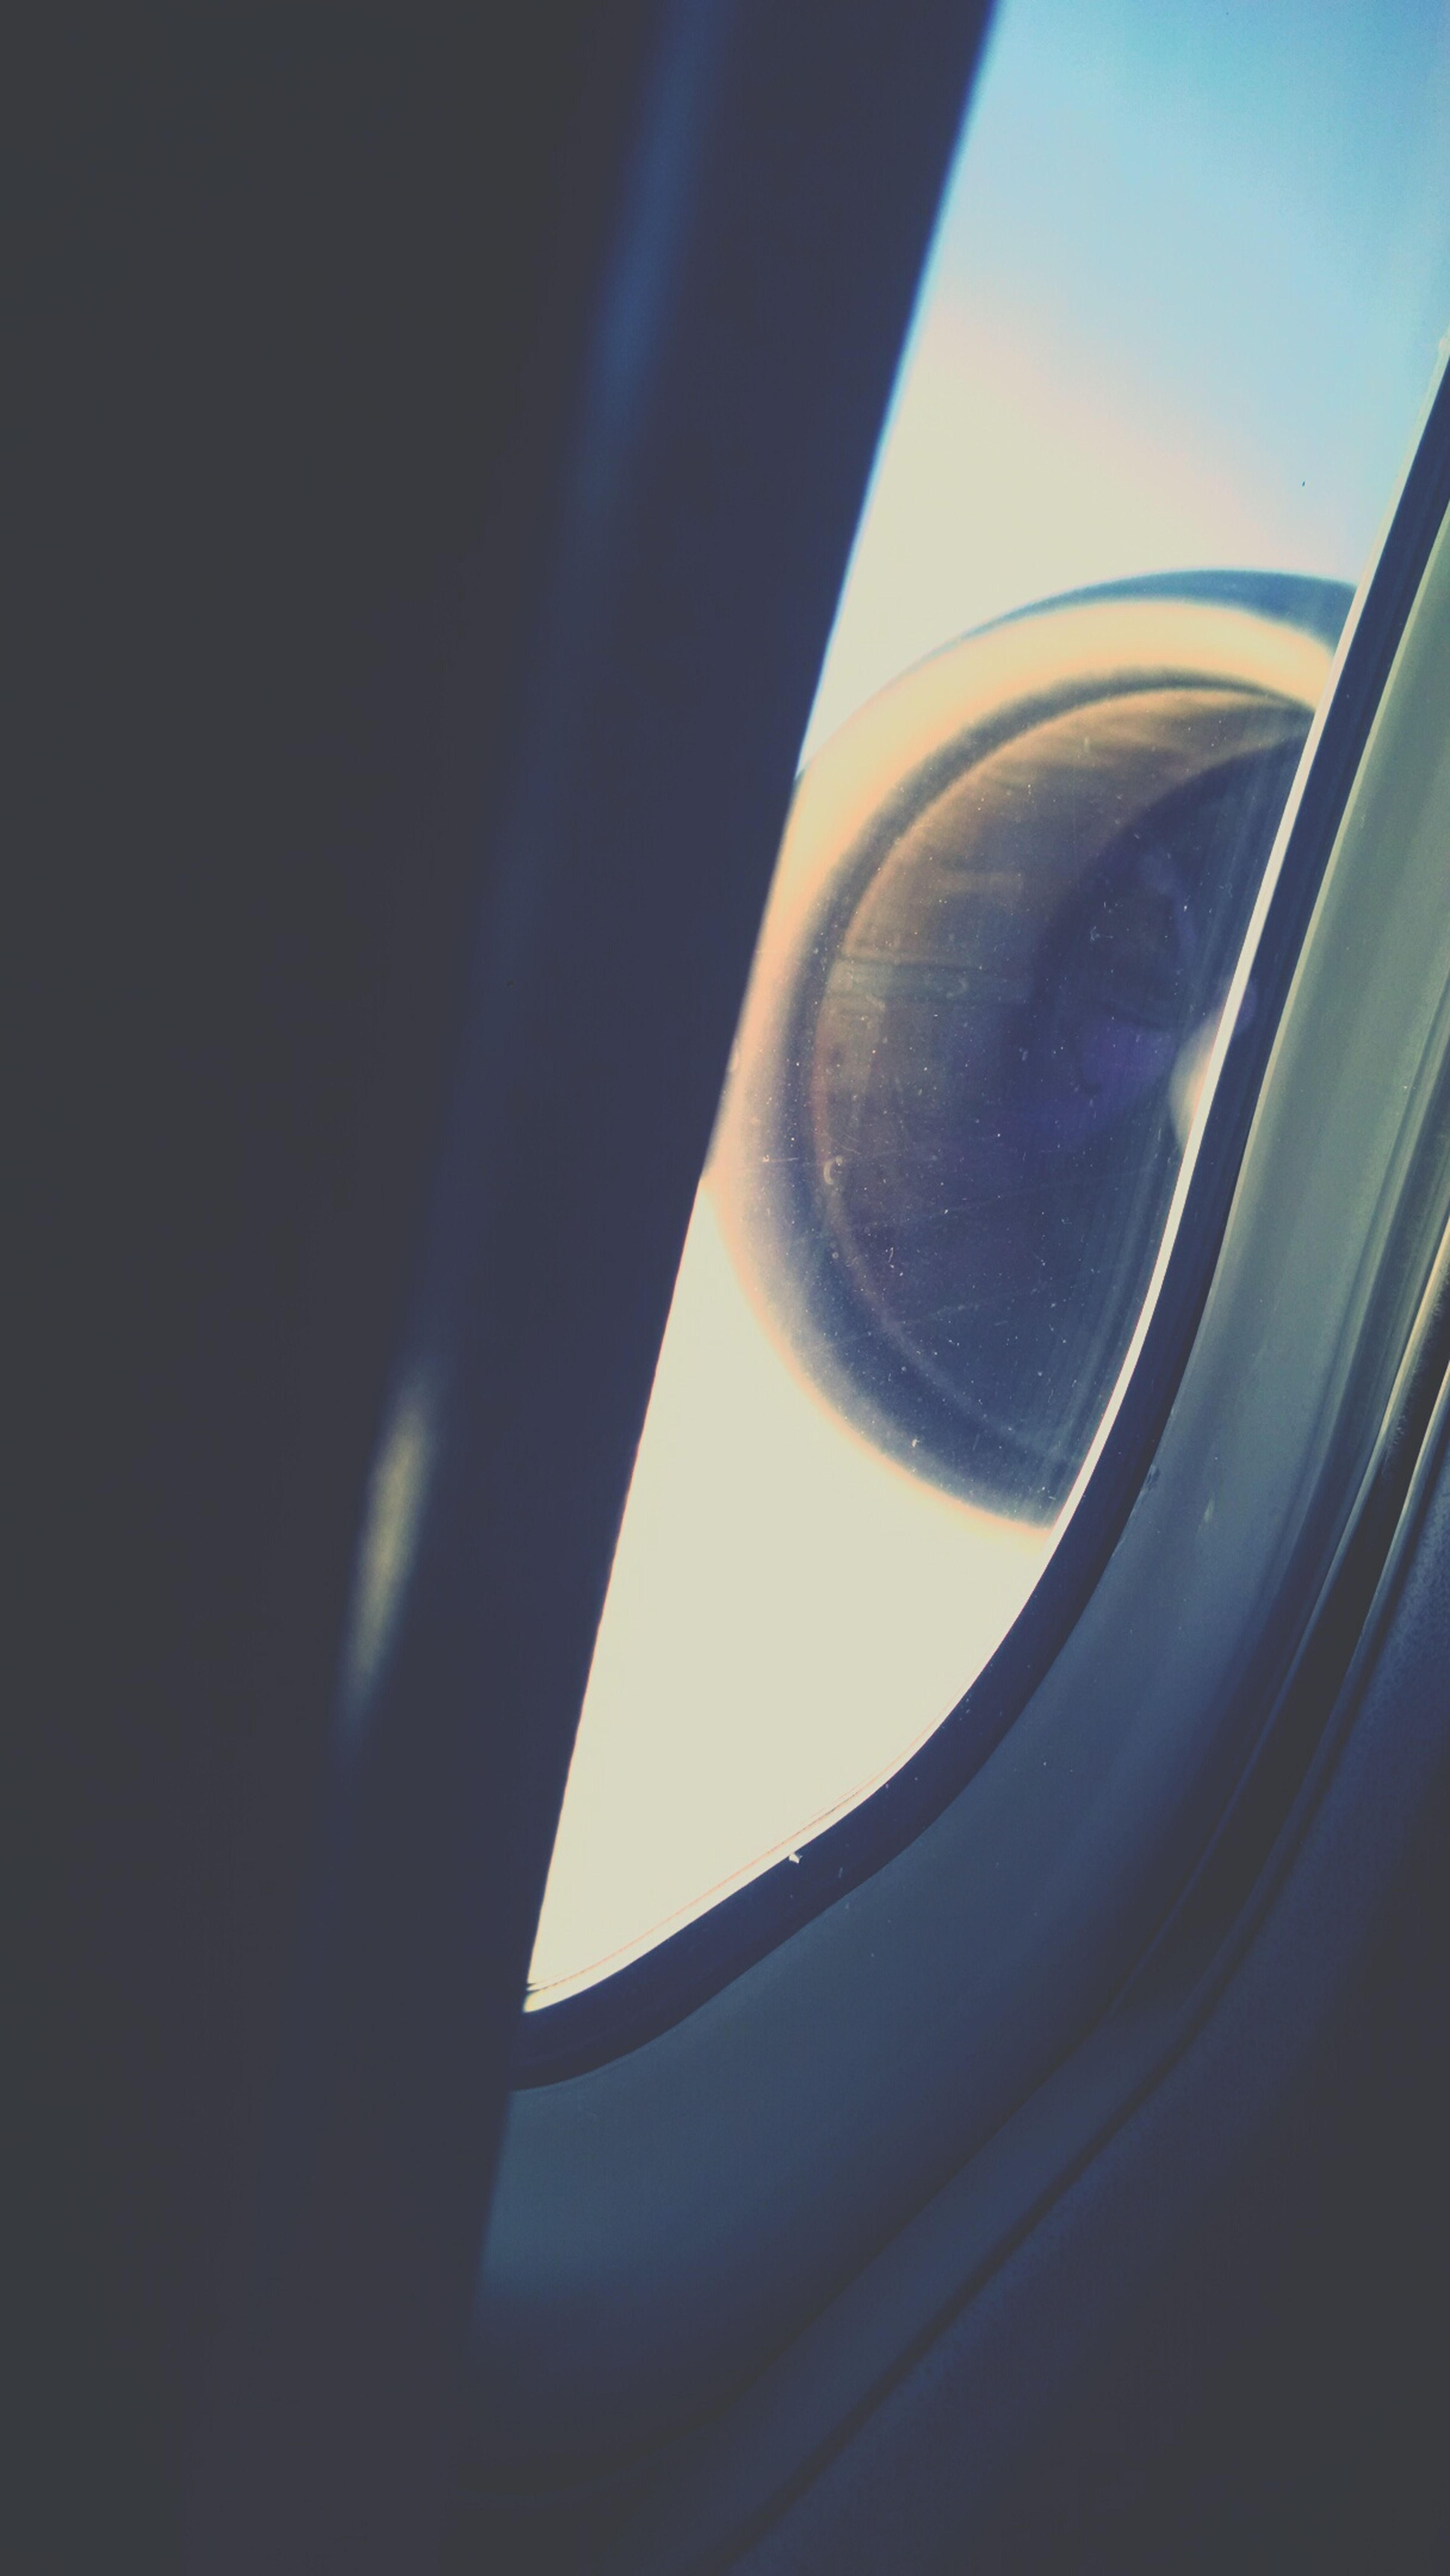 From An Airplane Window Md80 JT8D